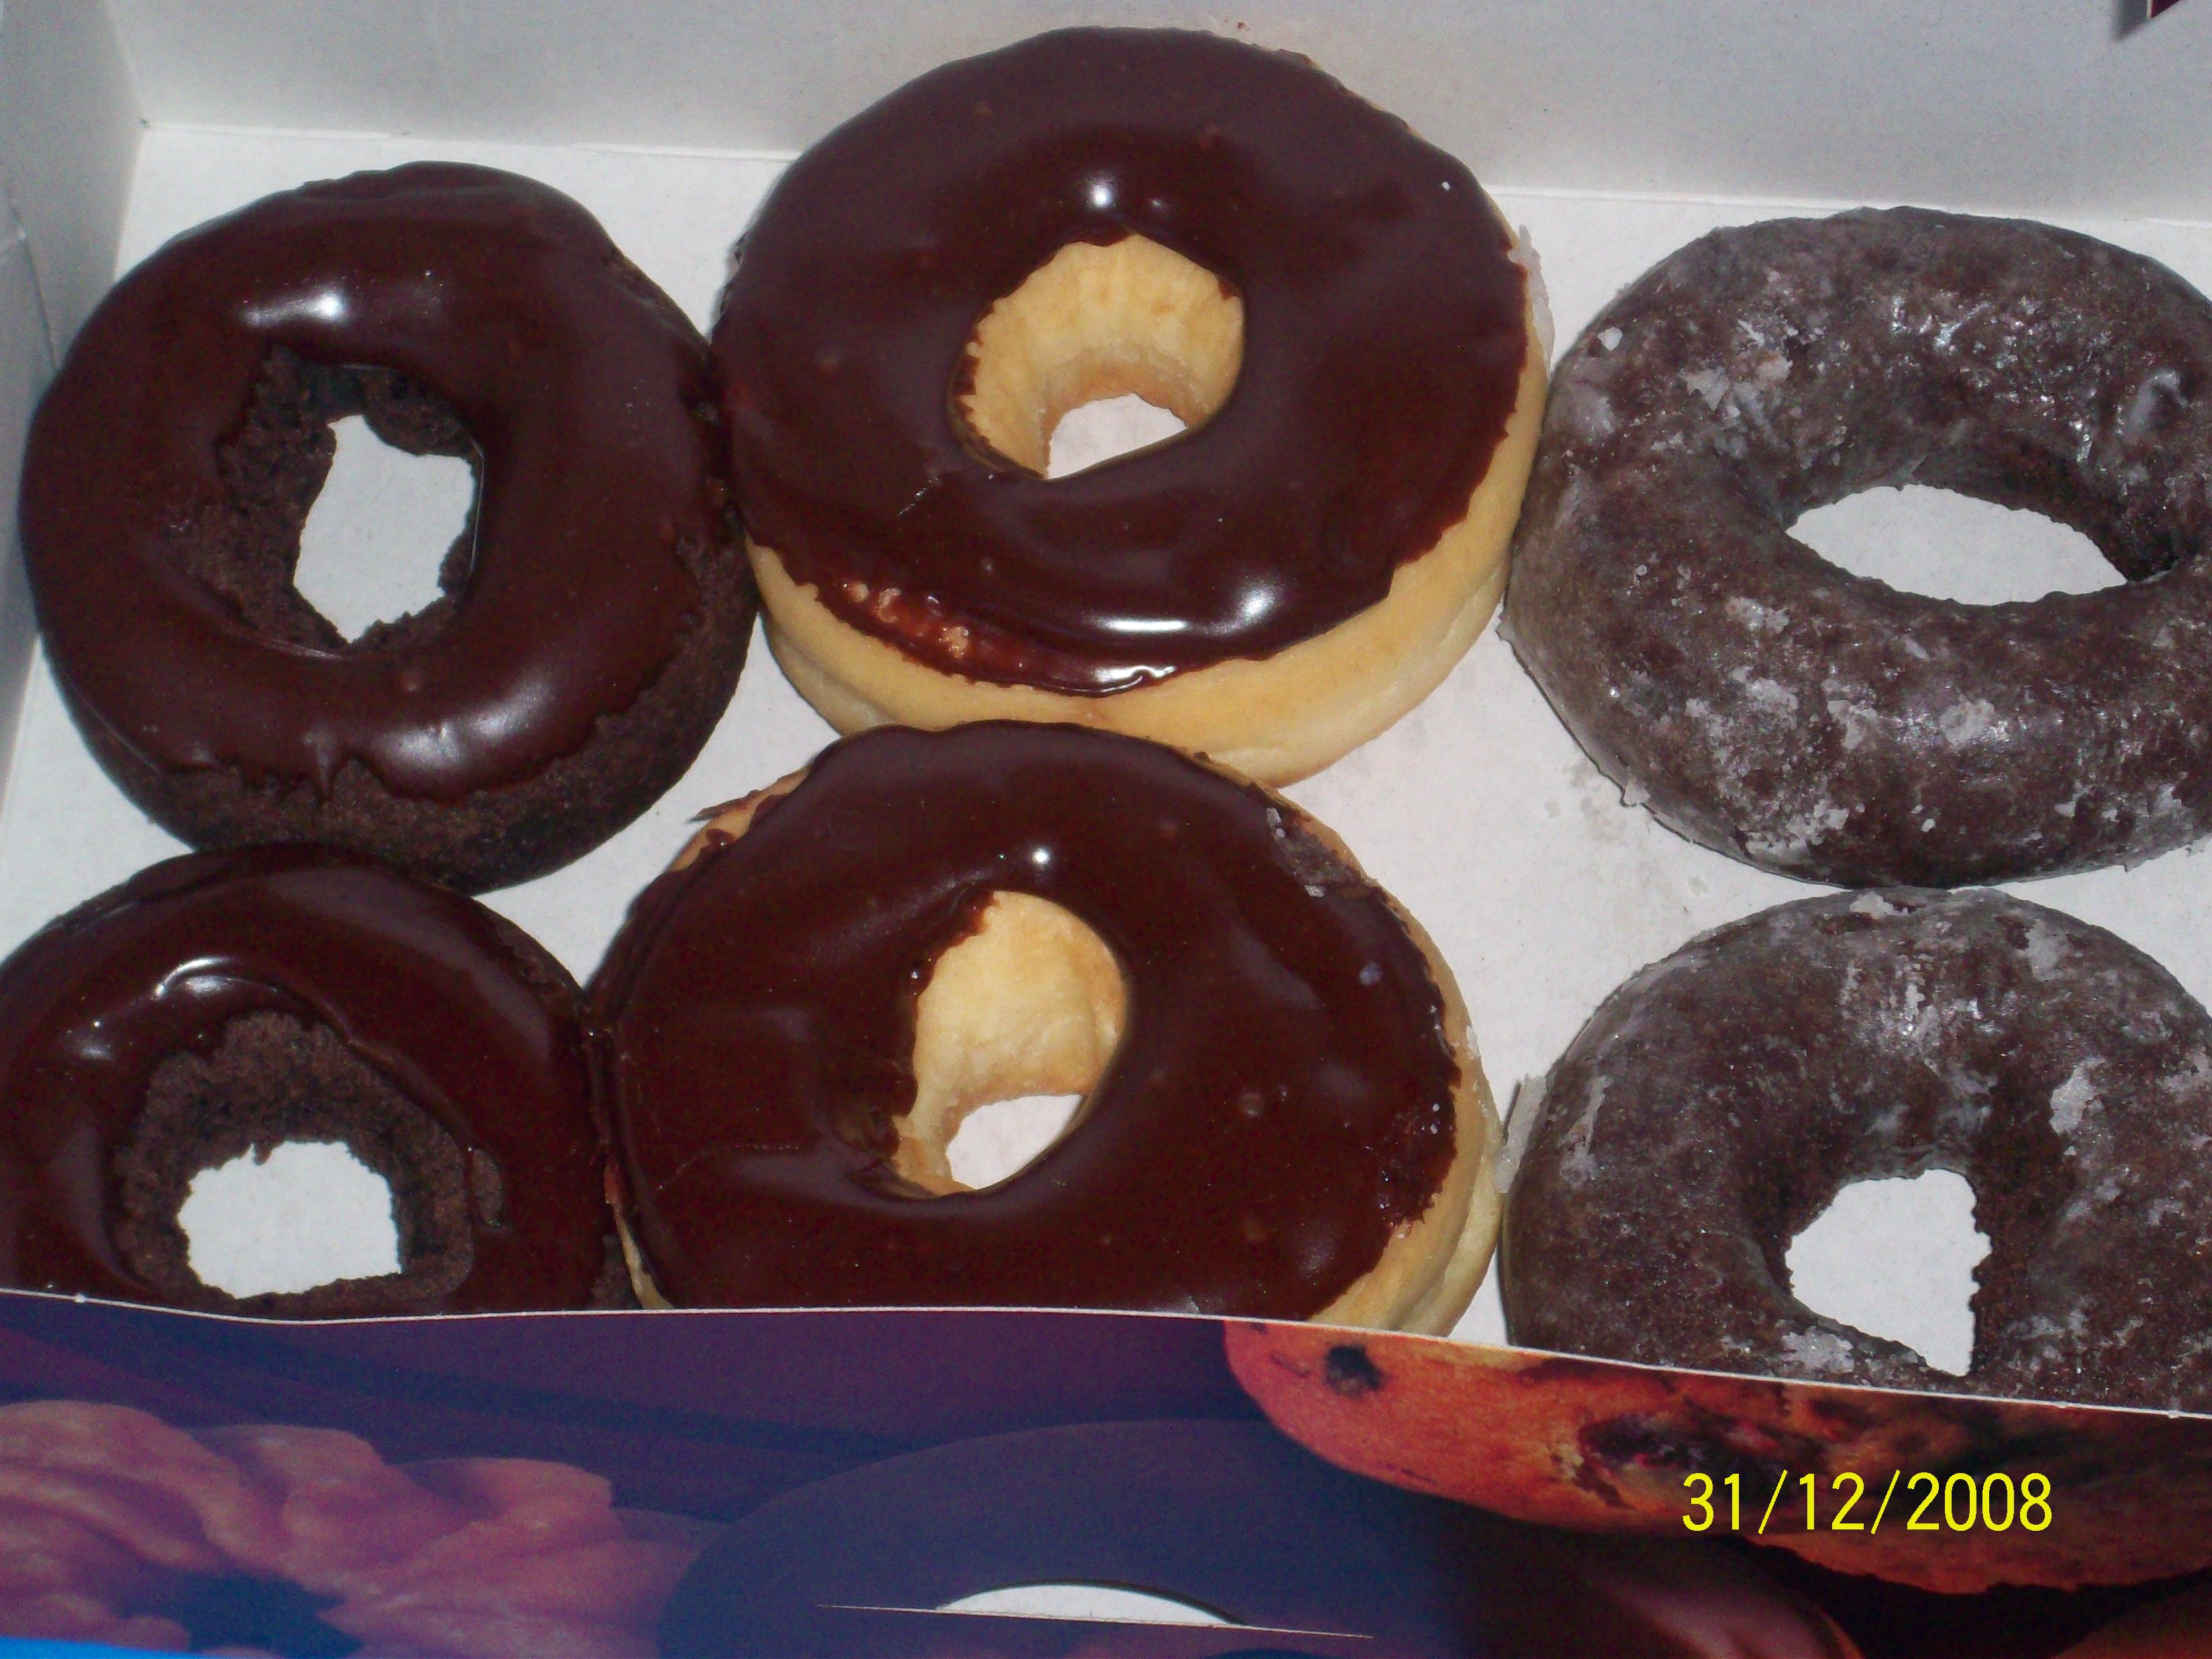 cutie • 2009-01-01 • Tim_Hortons_Assorted_Donuts